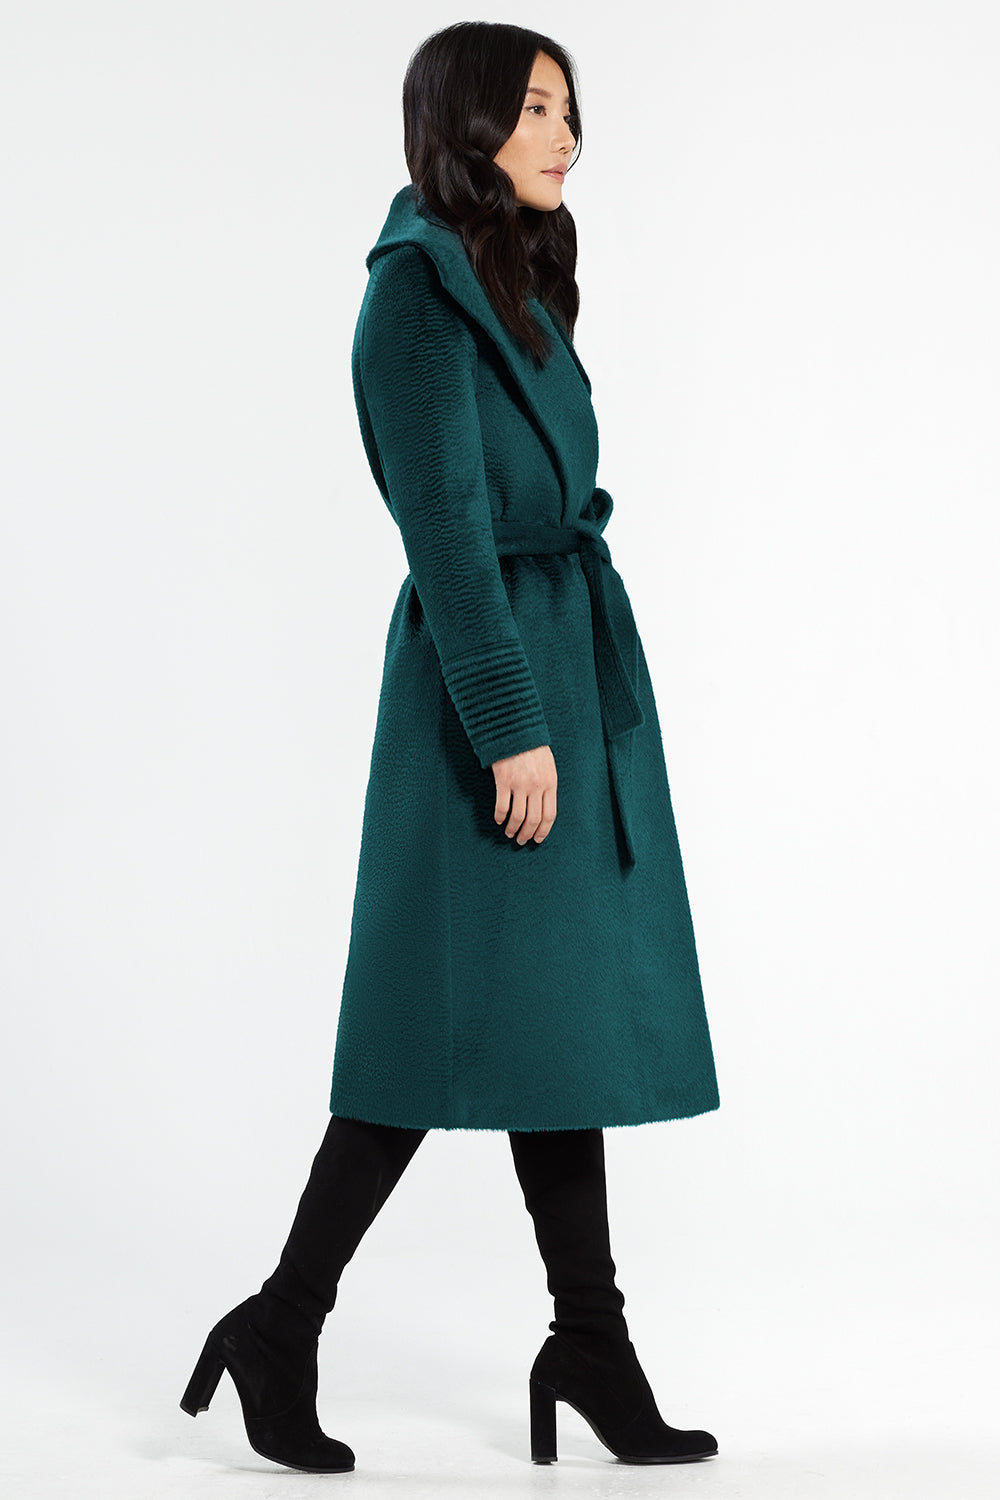 Sentaler Suri Alpaca Long Shawl Collar Wrap Coat featured in Suri Alpaca and available in Emerald Green. Seen from side.